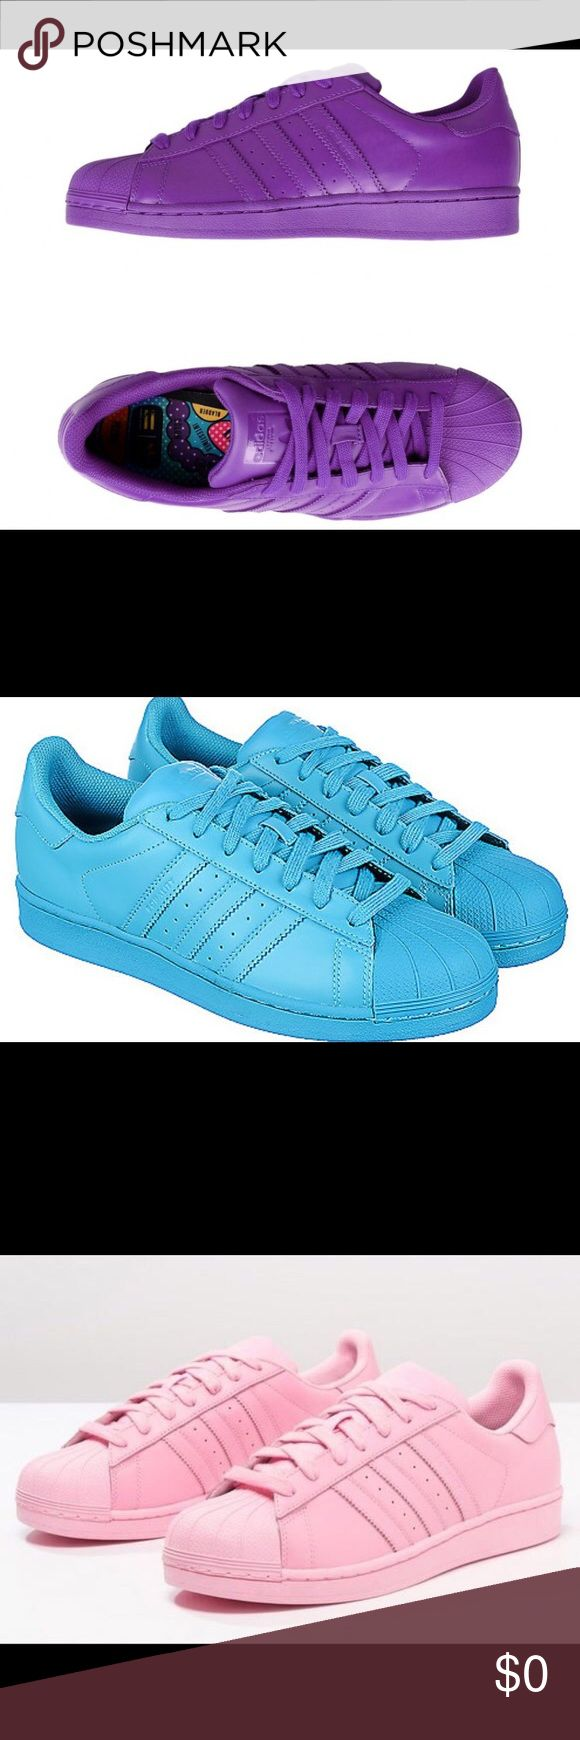 ISO...Pharrell Williams Superstar Supercolor's!!! Please Tag Me If You Find Any Of The Colors Above That Fit A Women's Size 7...Thank You...🙏😘 Adidas Superstar Supercolor Shoes Sneakers